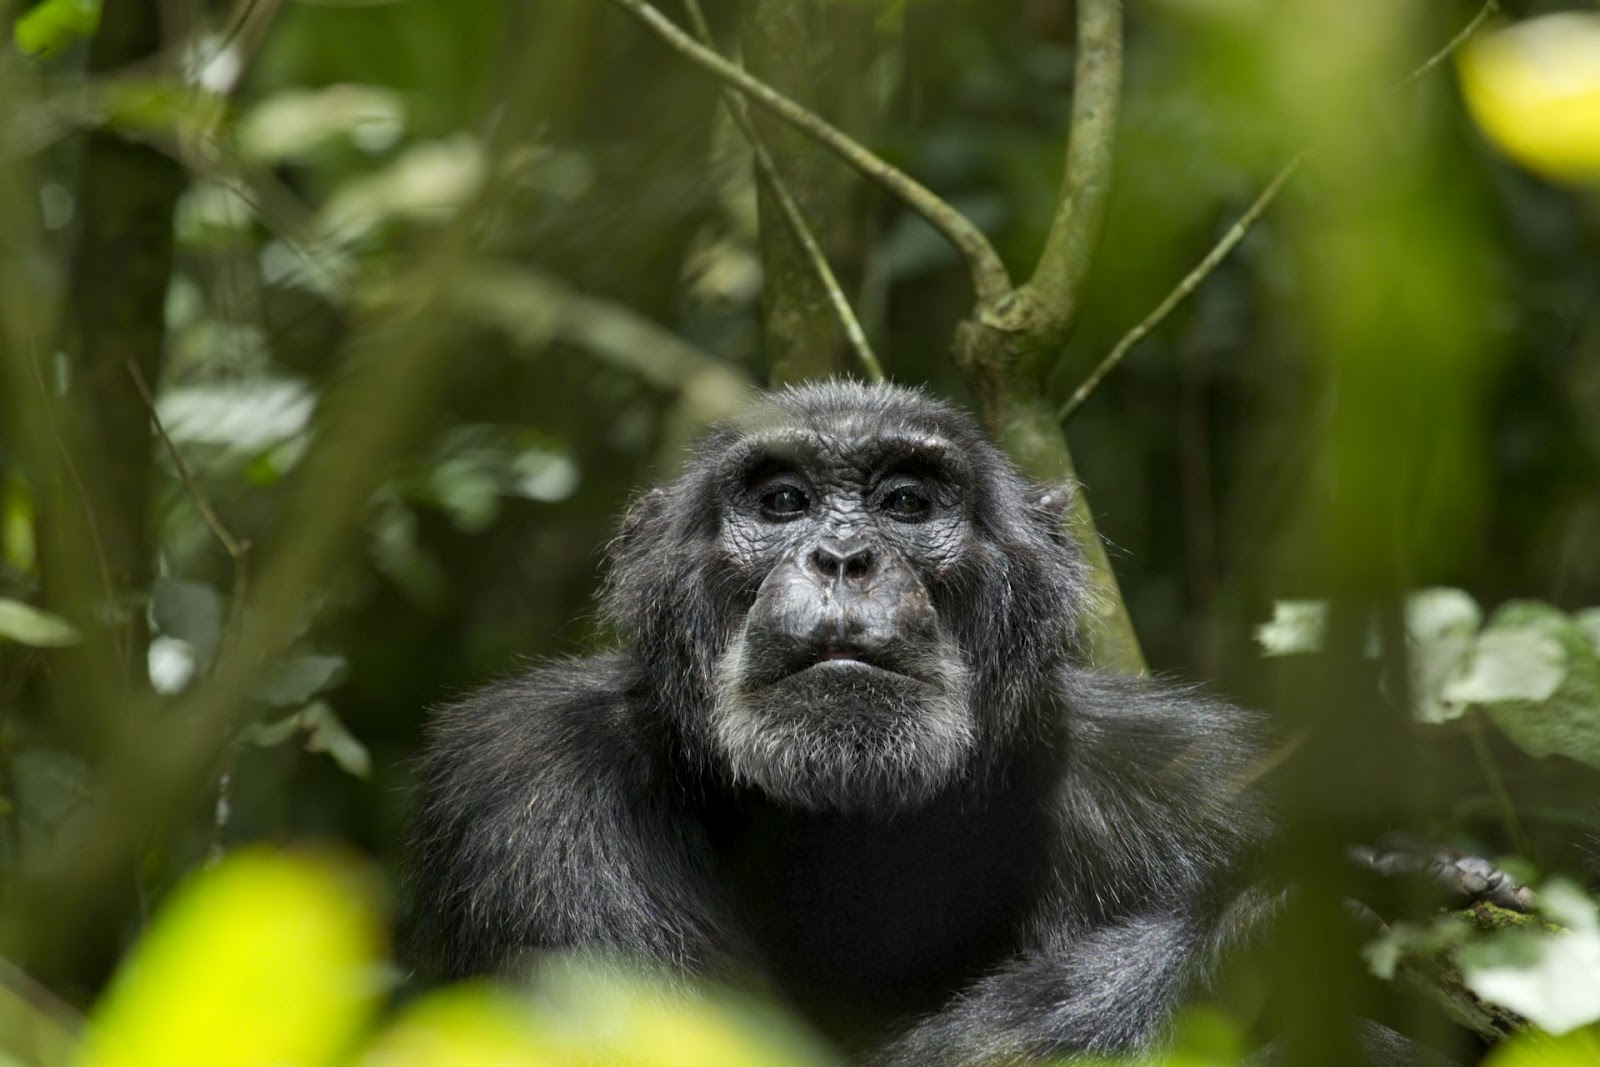 the cultural barrier between chimpanzees and And what does this teach us about human nature and culture  to a genetic  basis— but the techniques they use show subtle differences  looking at  chimpanzee culture challenges us to view behaviour through the blind.